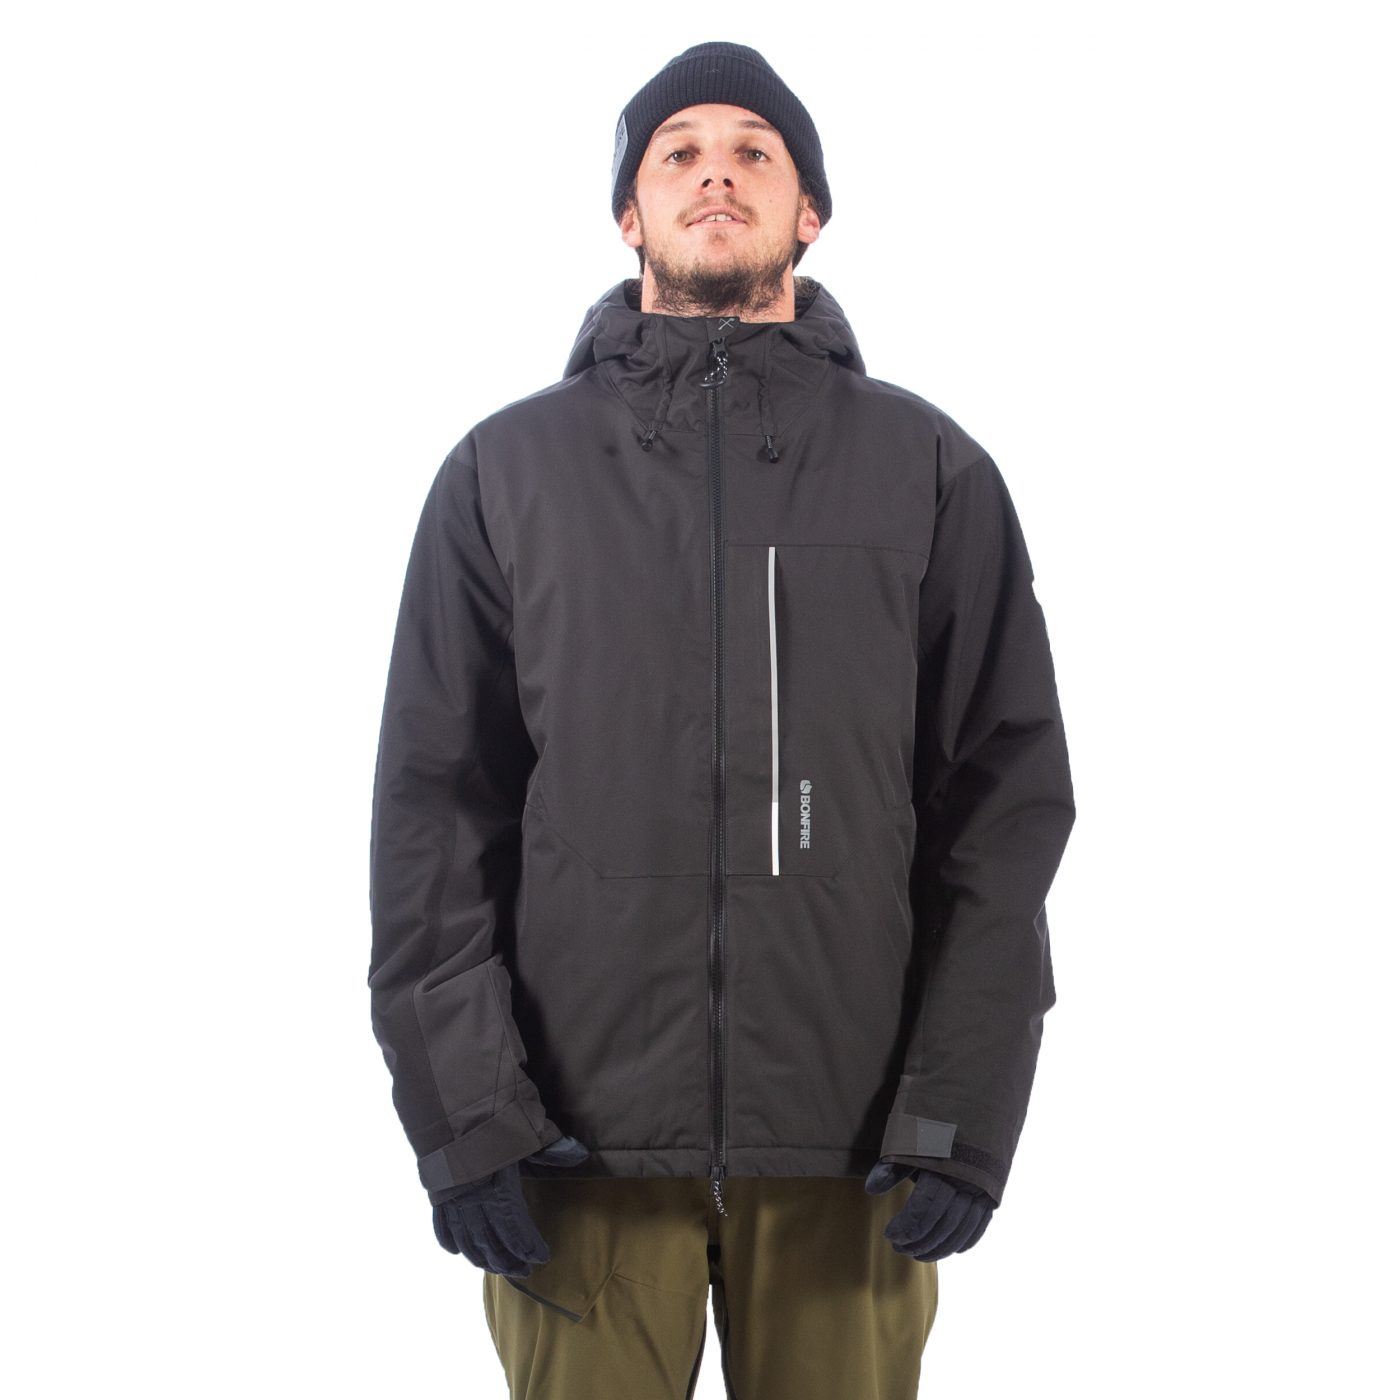 ELEVATION INSULATED JACKET